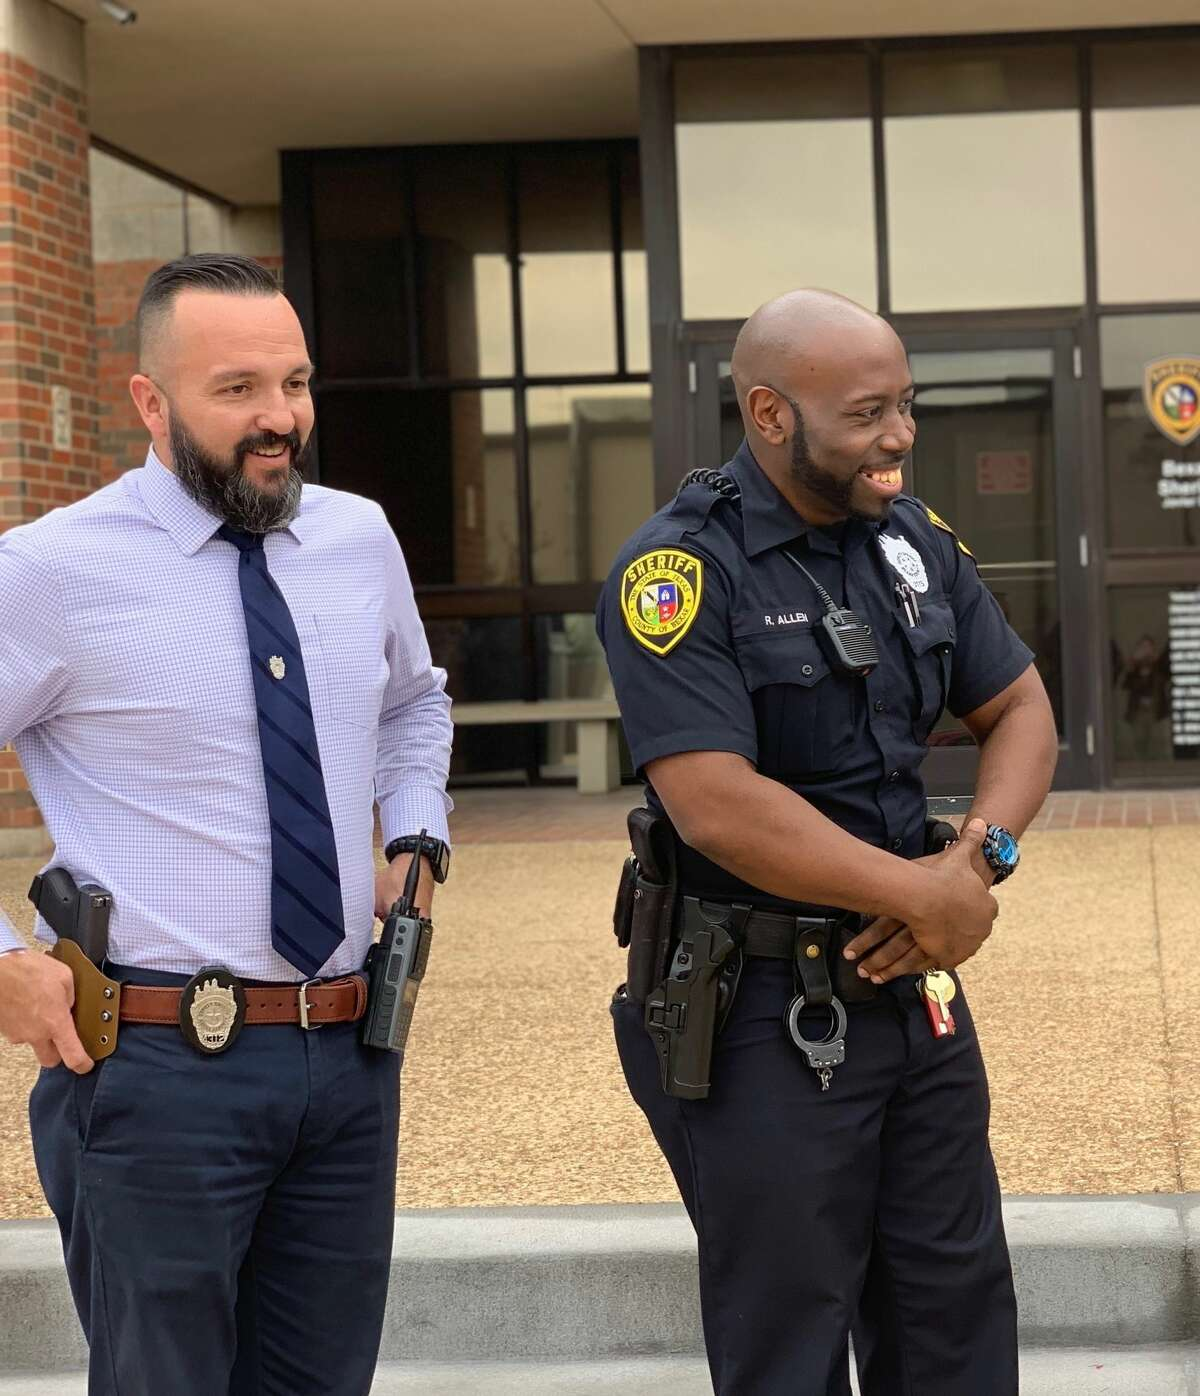 Sheriff Javier Salazar announced Thursday that all uniformed personnel will be allowed to have beards year-round for the first time.